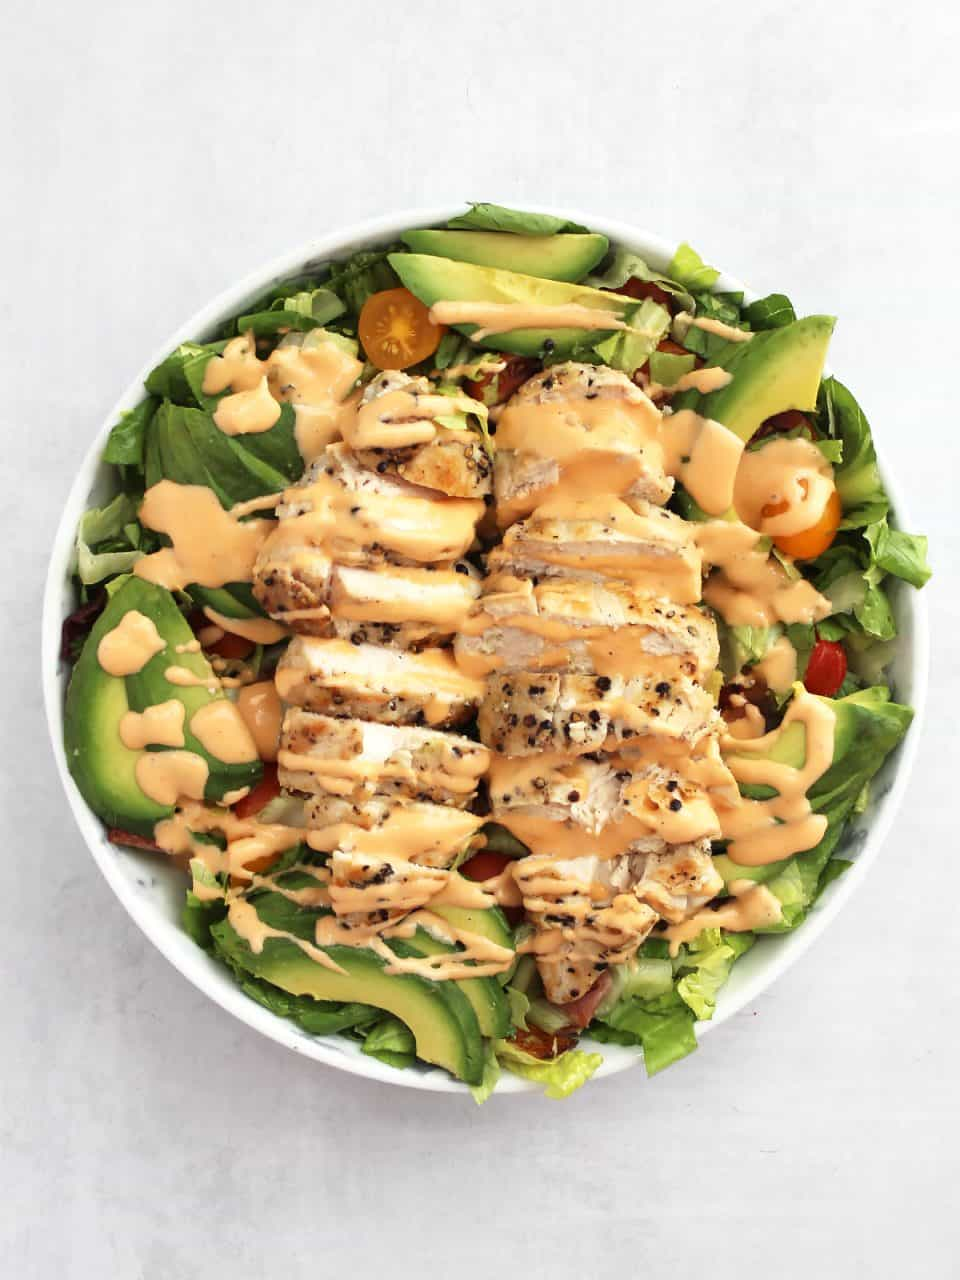 Overehead shot of a salad with chicken and avocado drizzled with a thick dressing.